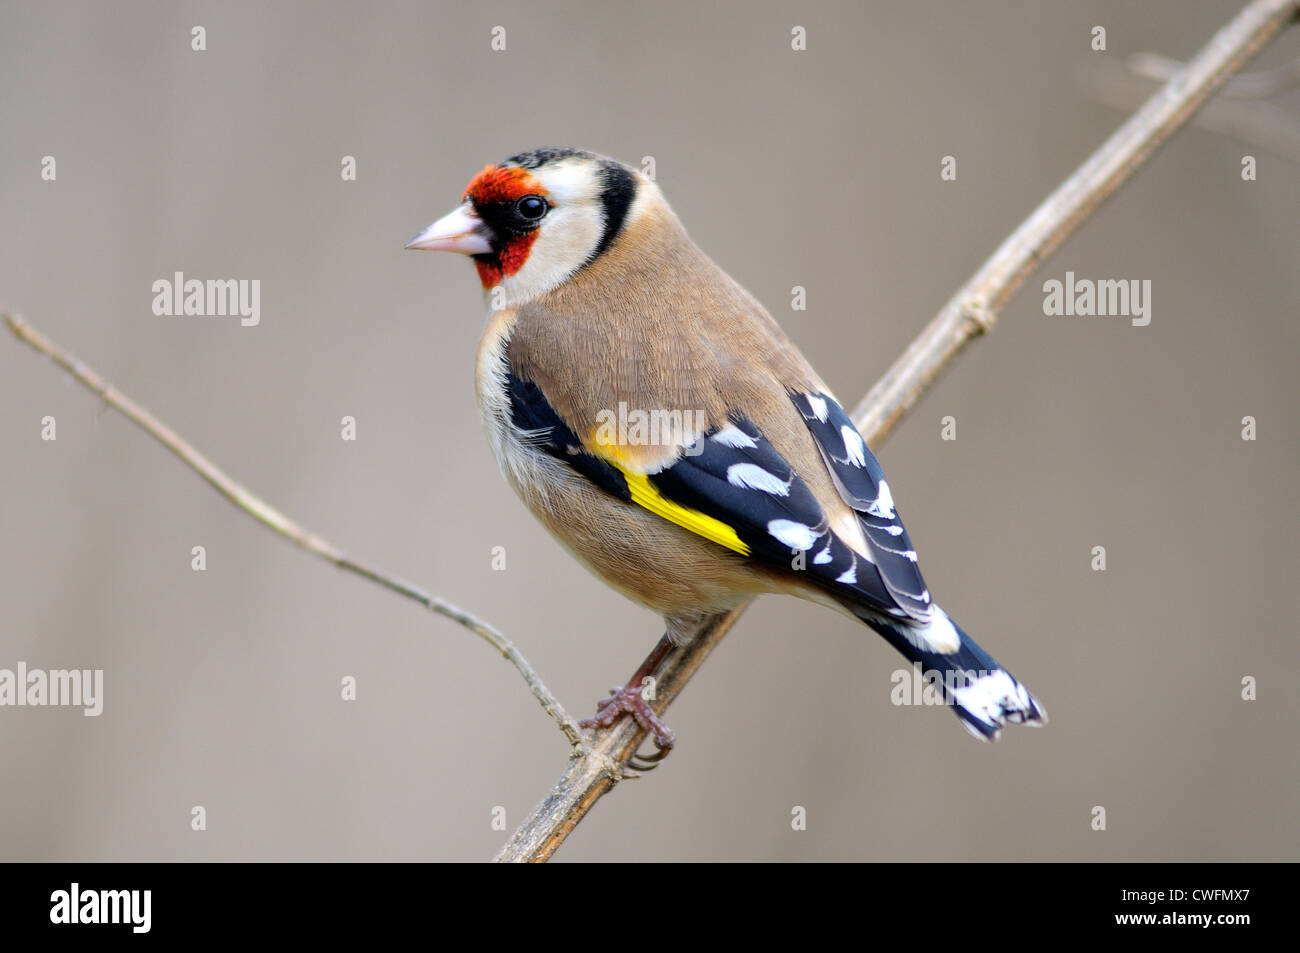 goldfinch carduelis finch bird garden seed eater - Stock Image